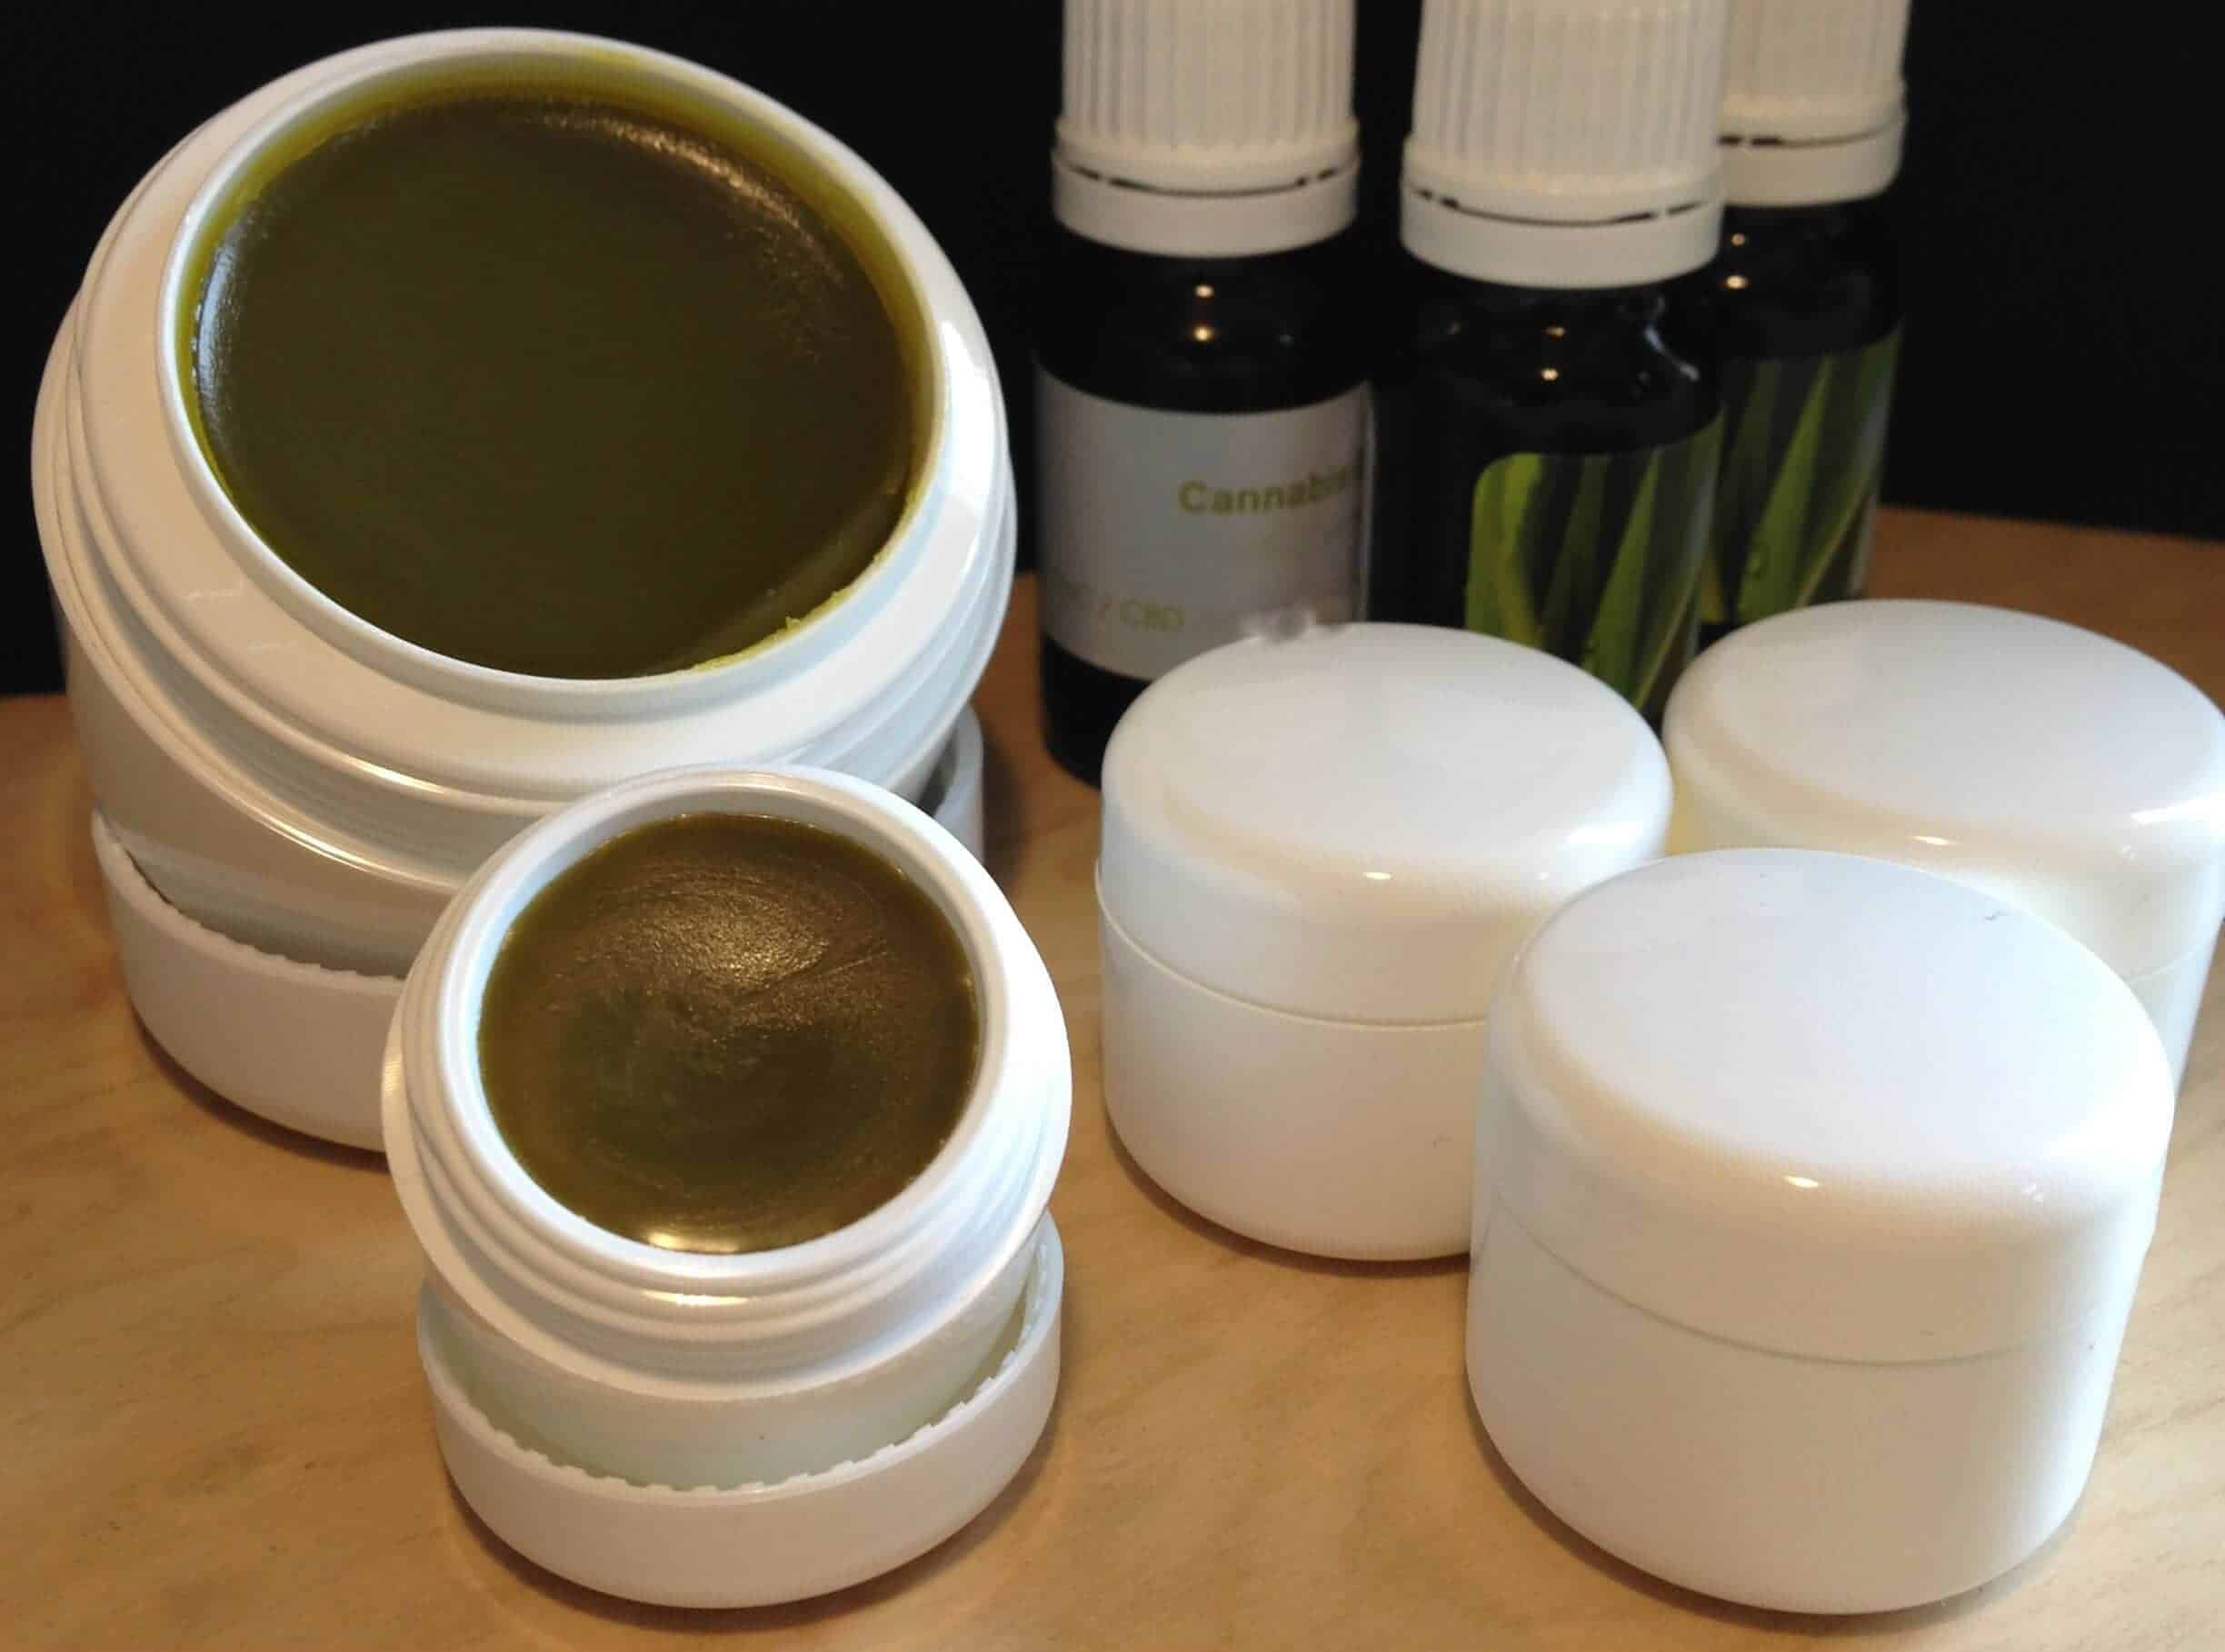 cbd creams and lotions featured image